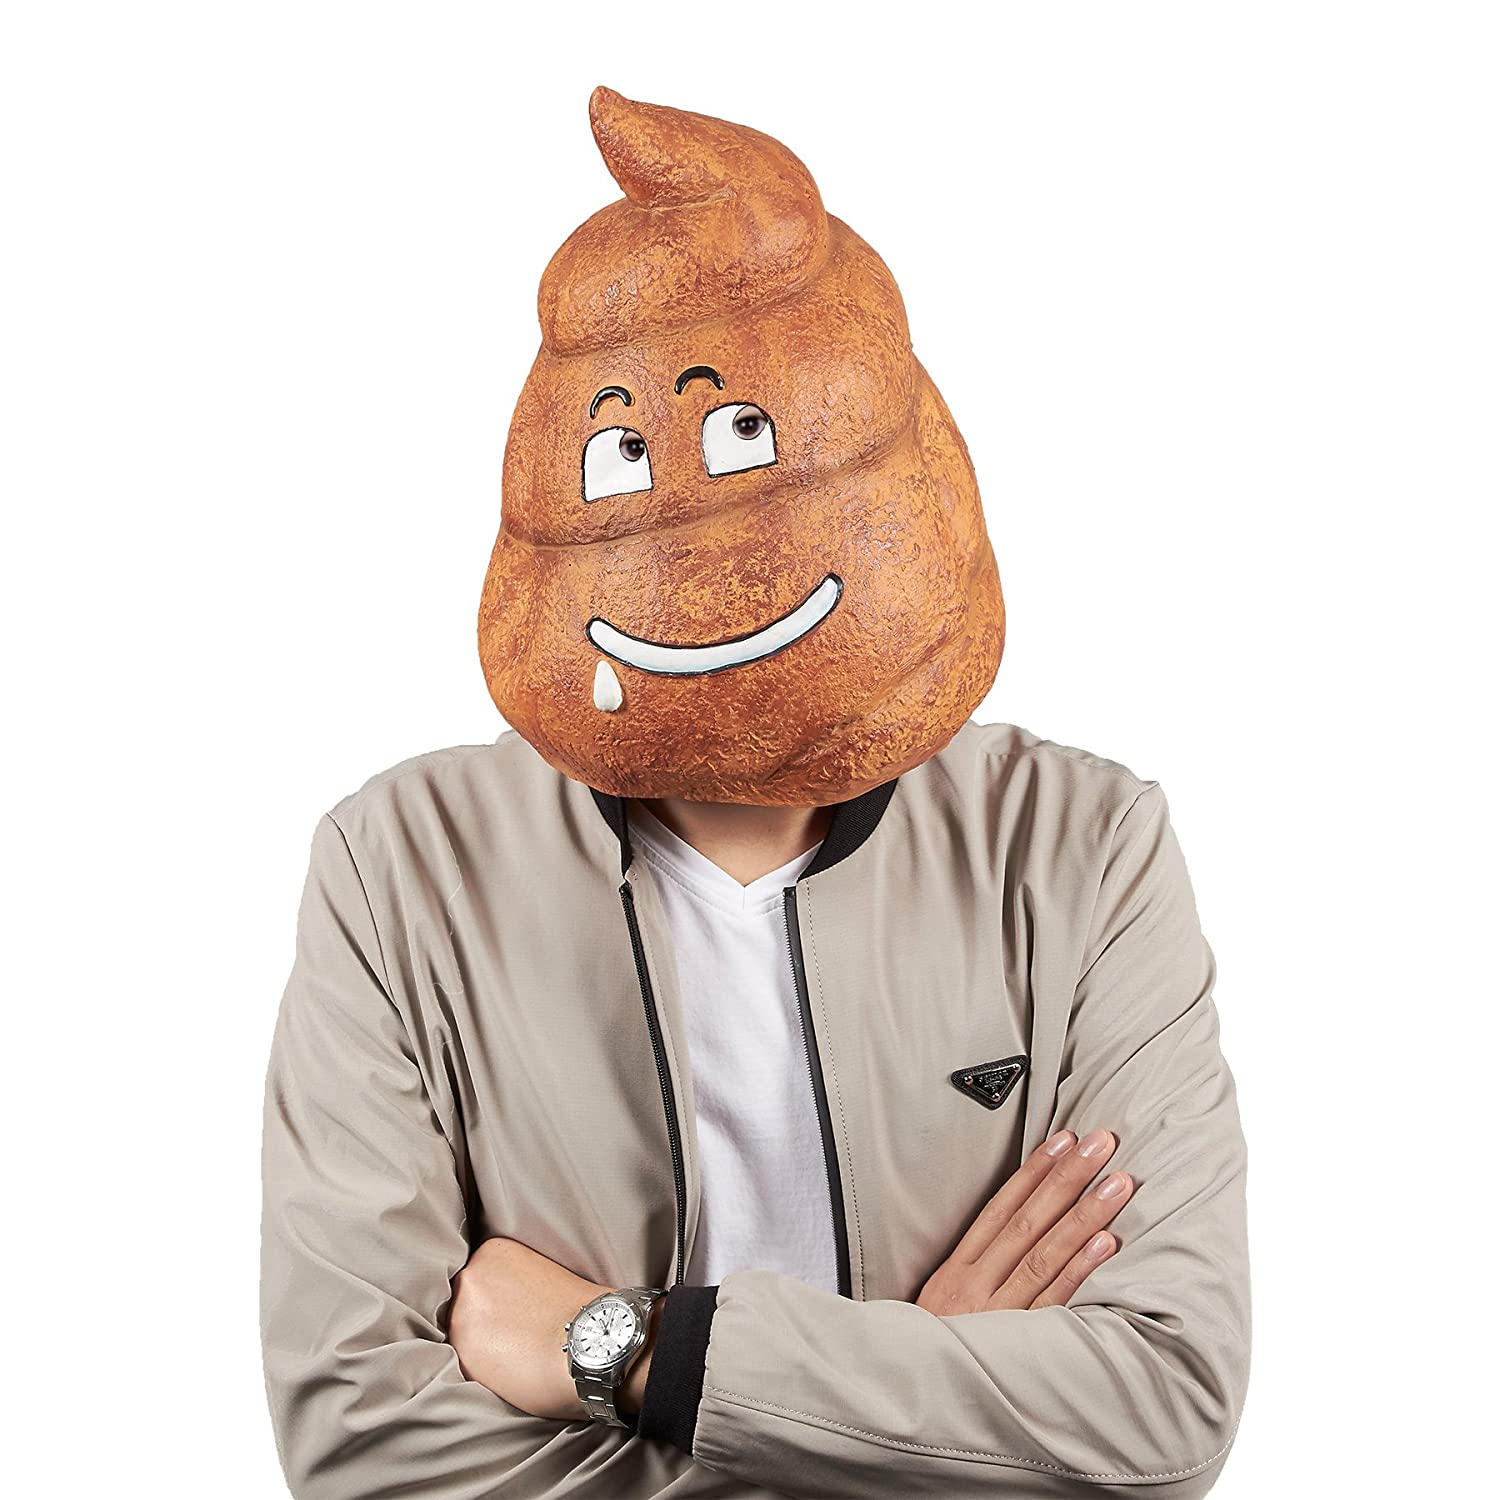 Poop Emoji Full Head Mask Face Cover Headwear for Costume Themed Party and Halloween Party Supplies Photo Booth Prop